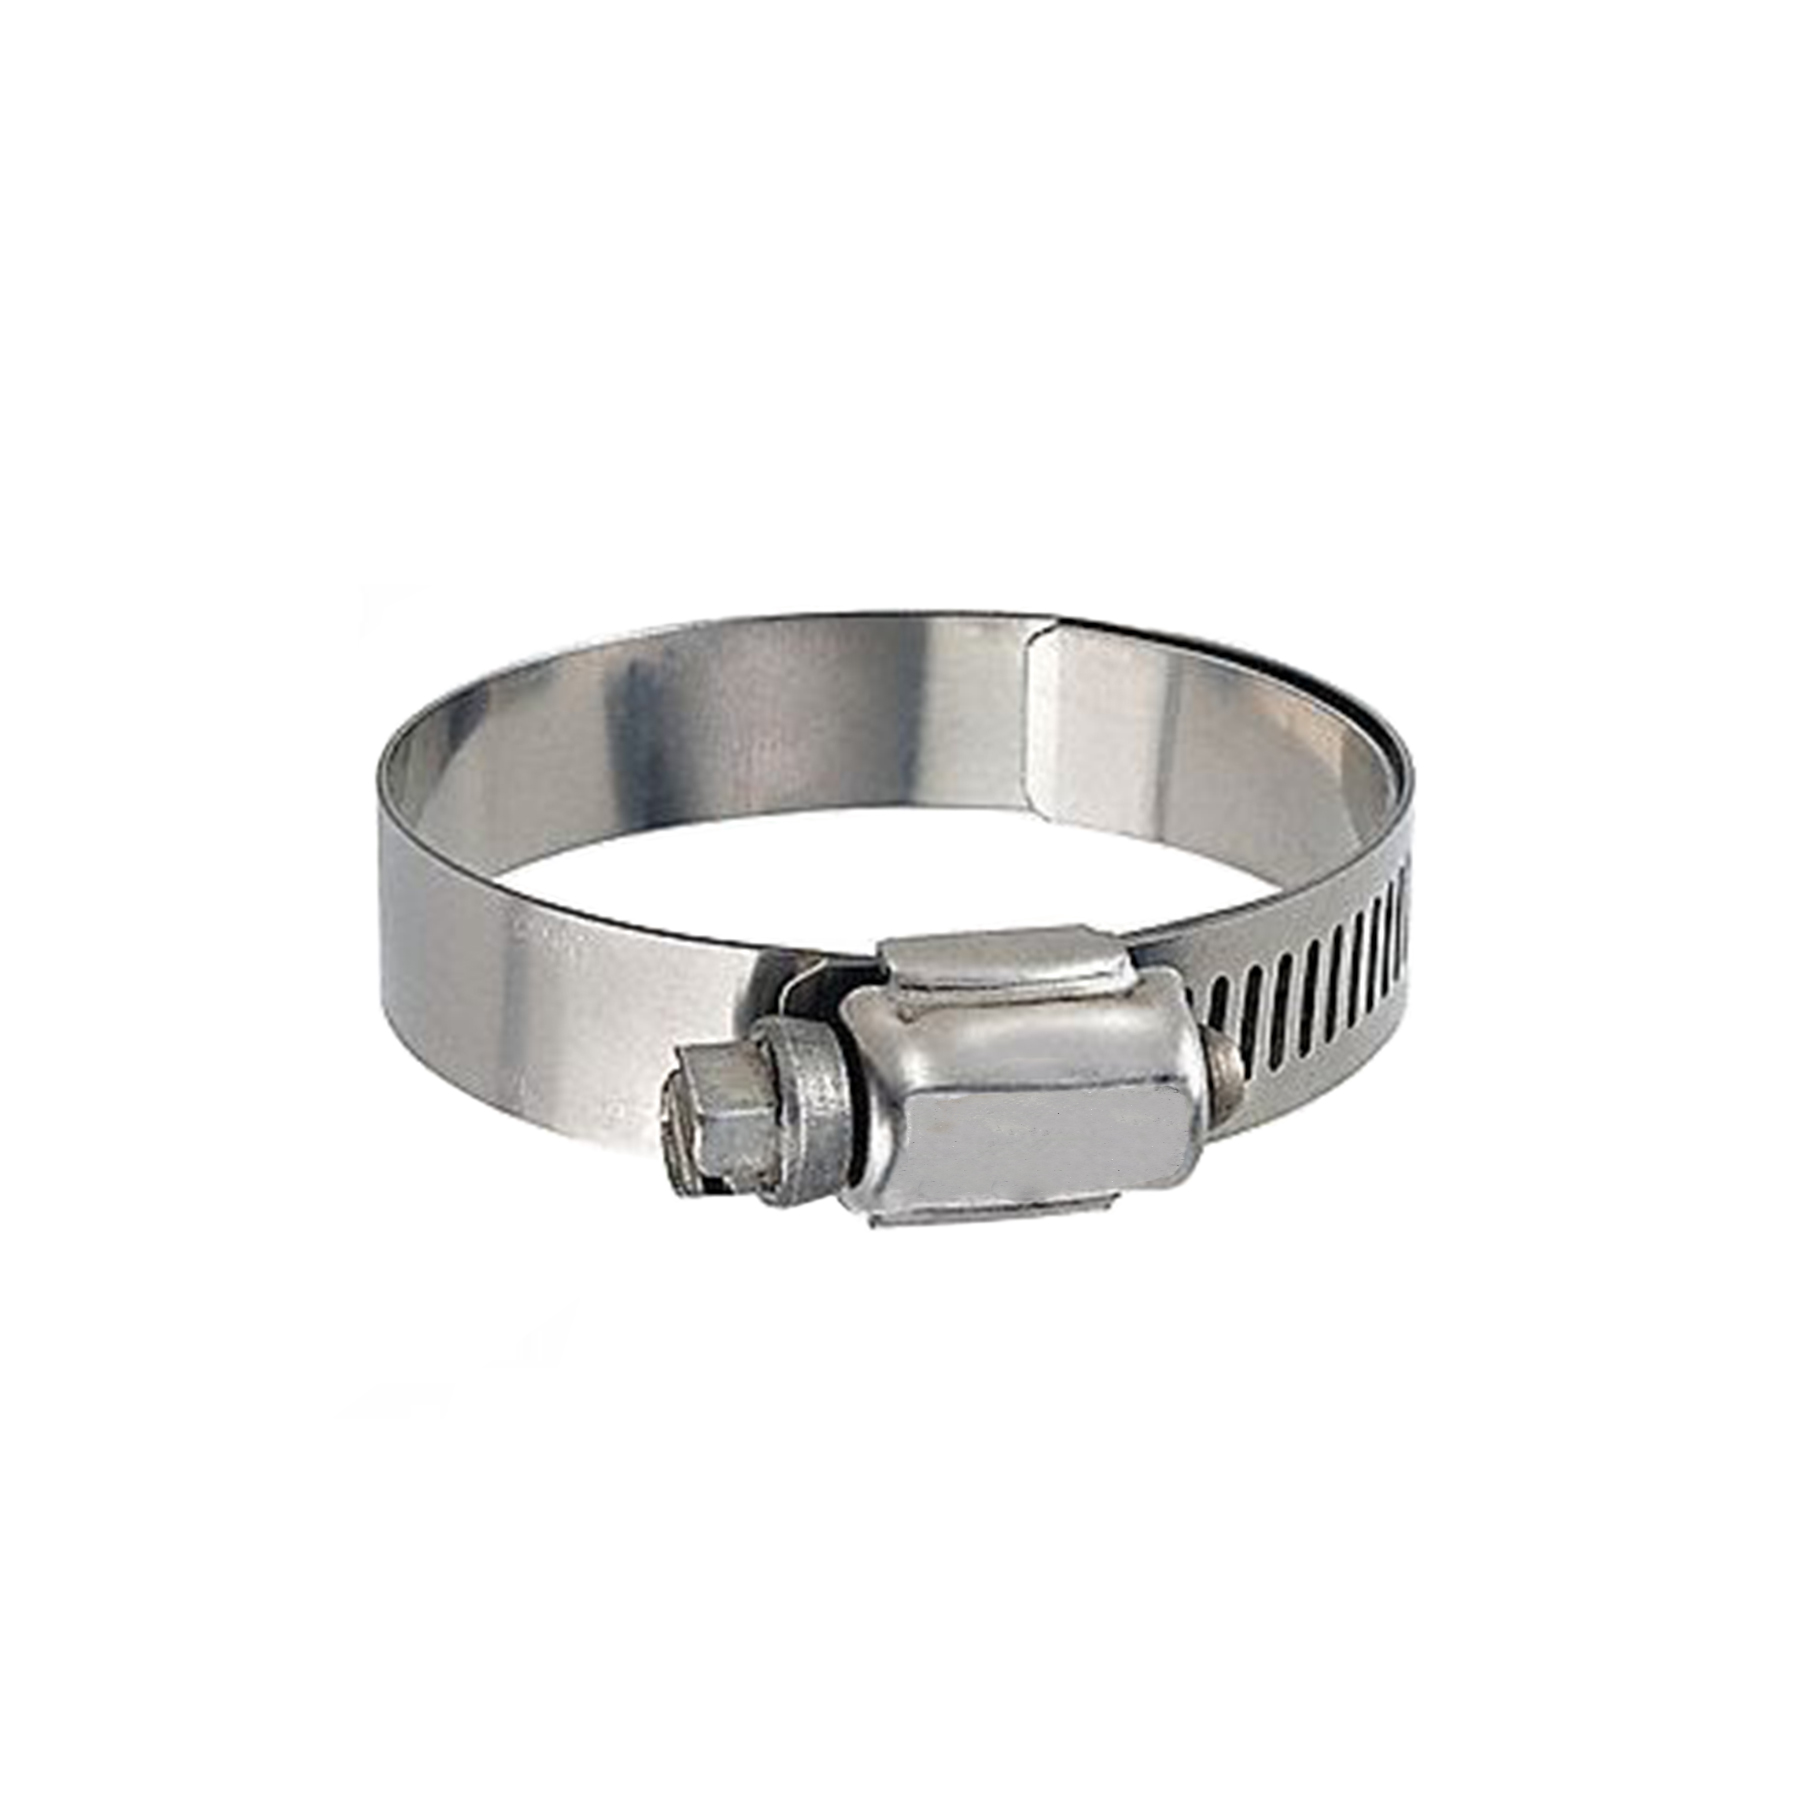 Lined Worm Gear Clamp, 7/8 to 1-14 Lined